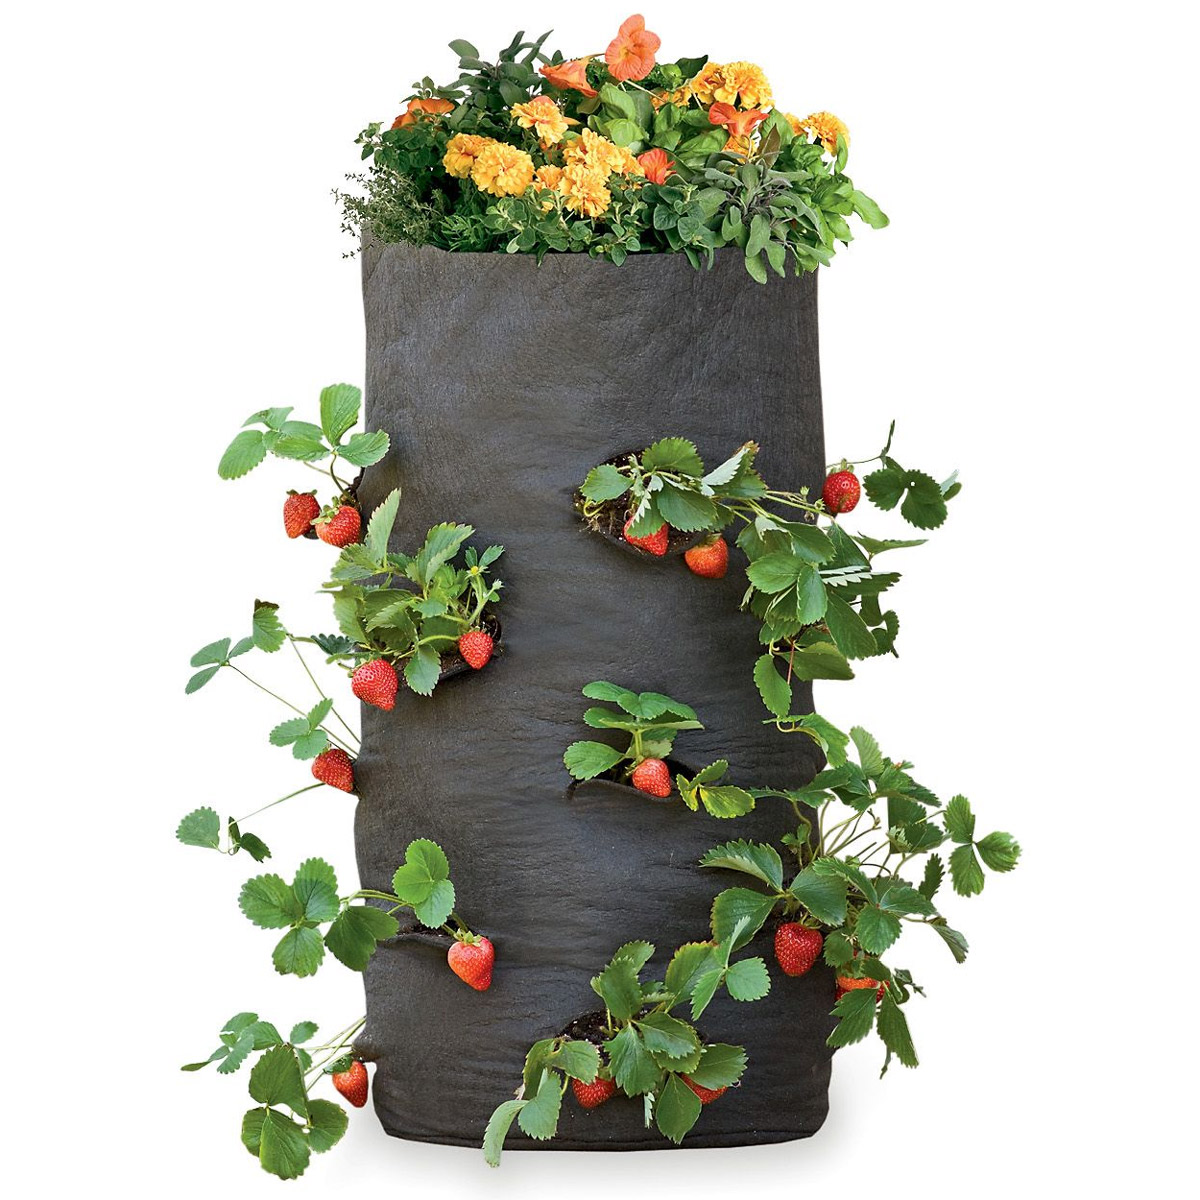 Grow Bags Tomatoes Peppers Herbs And Potatoes